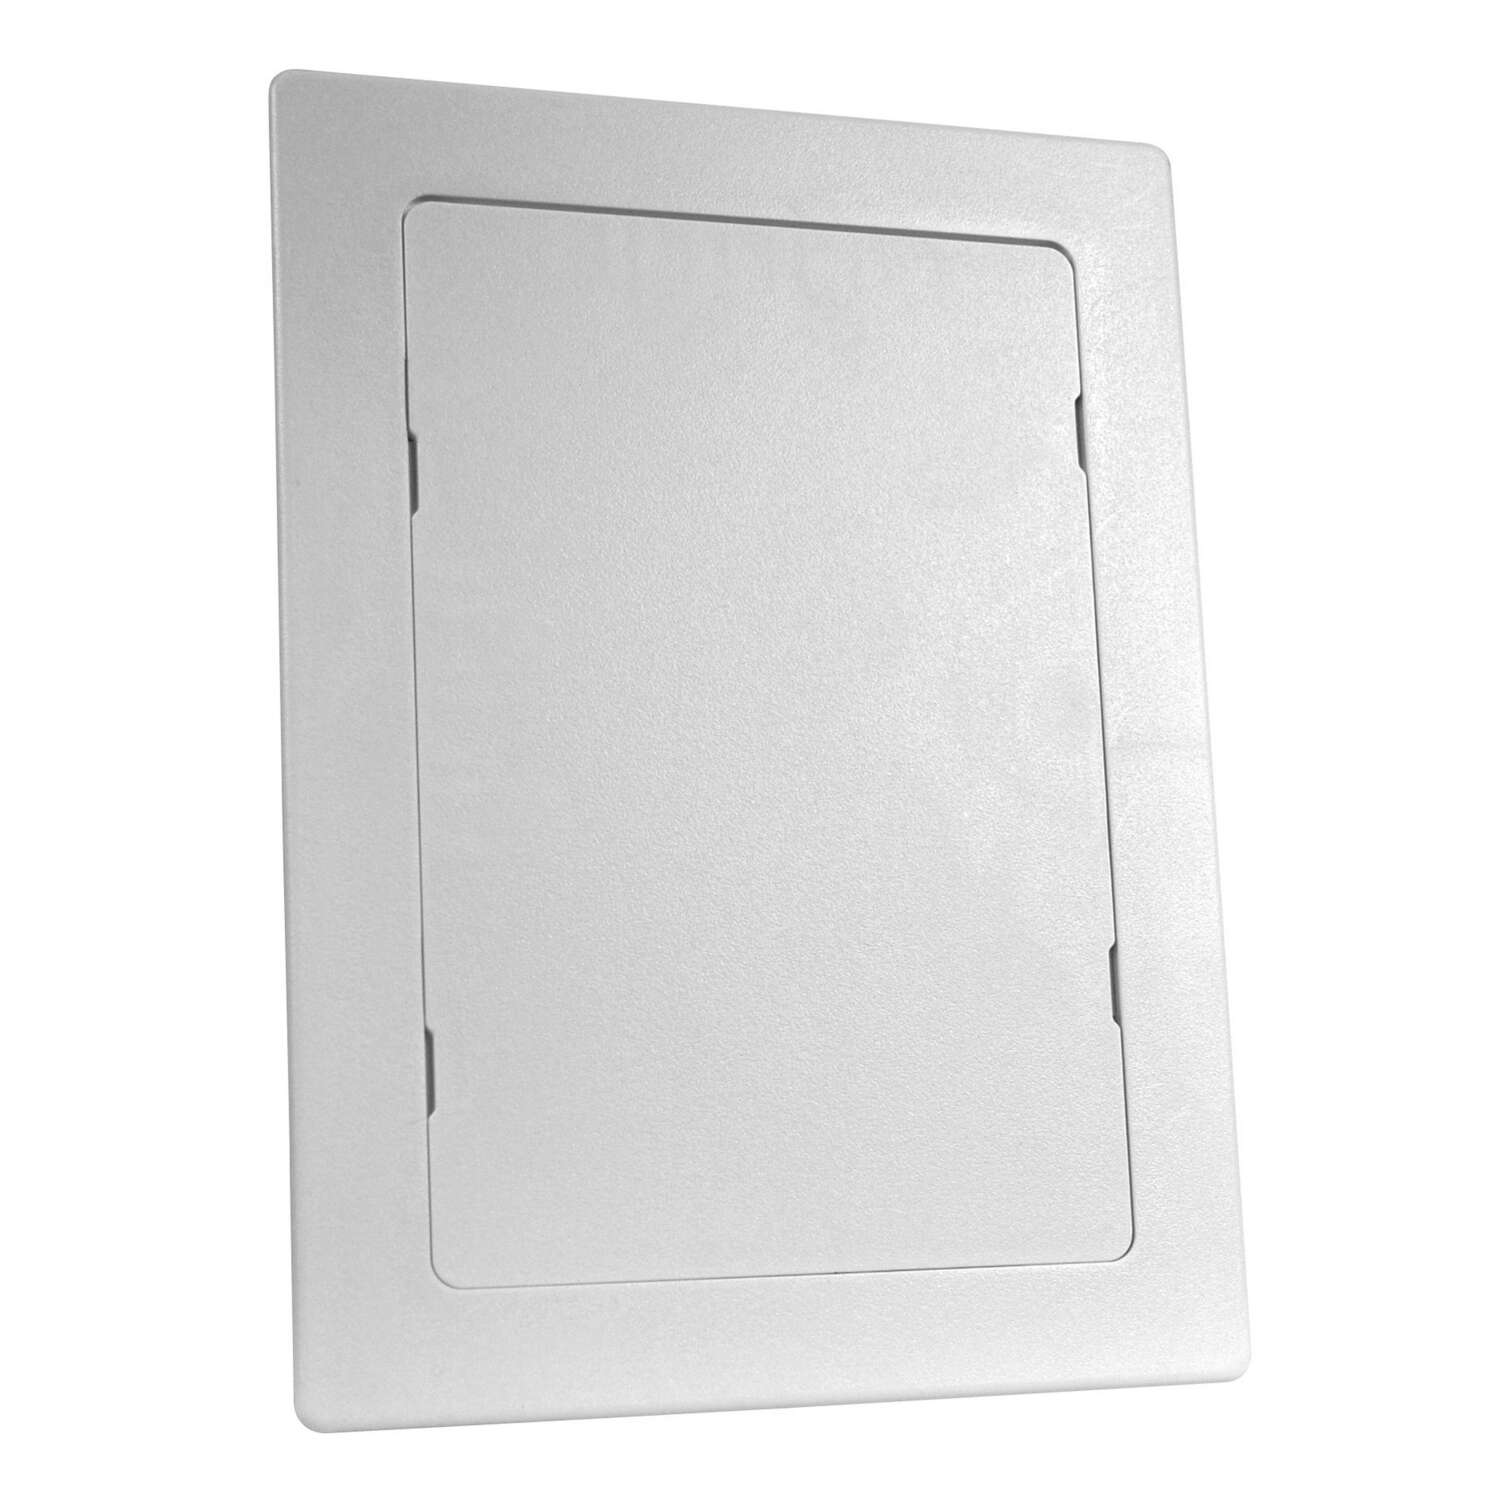 Oatey Snap-In Access Panel with Frame